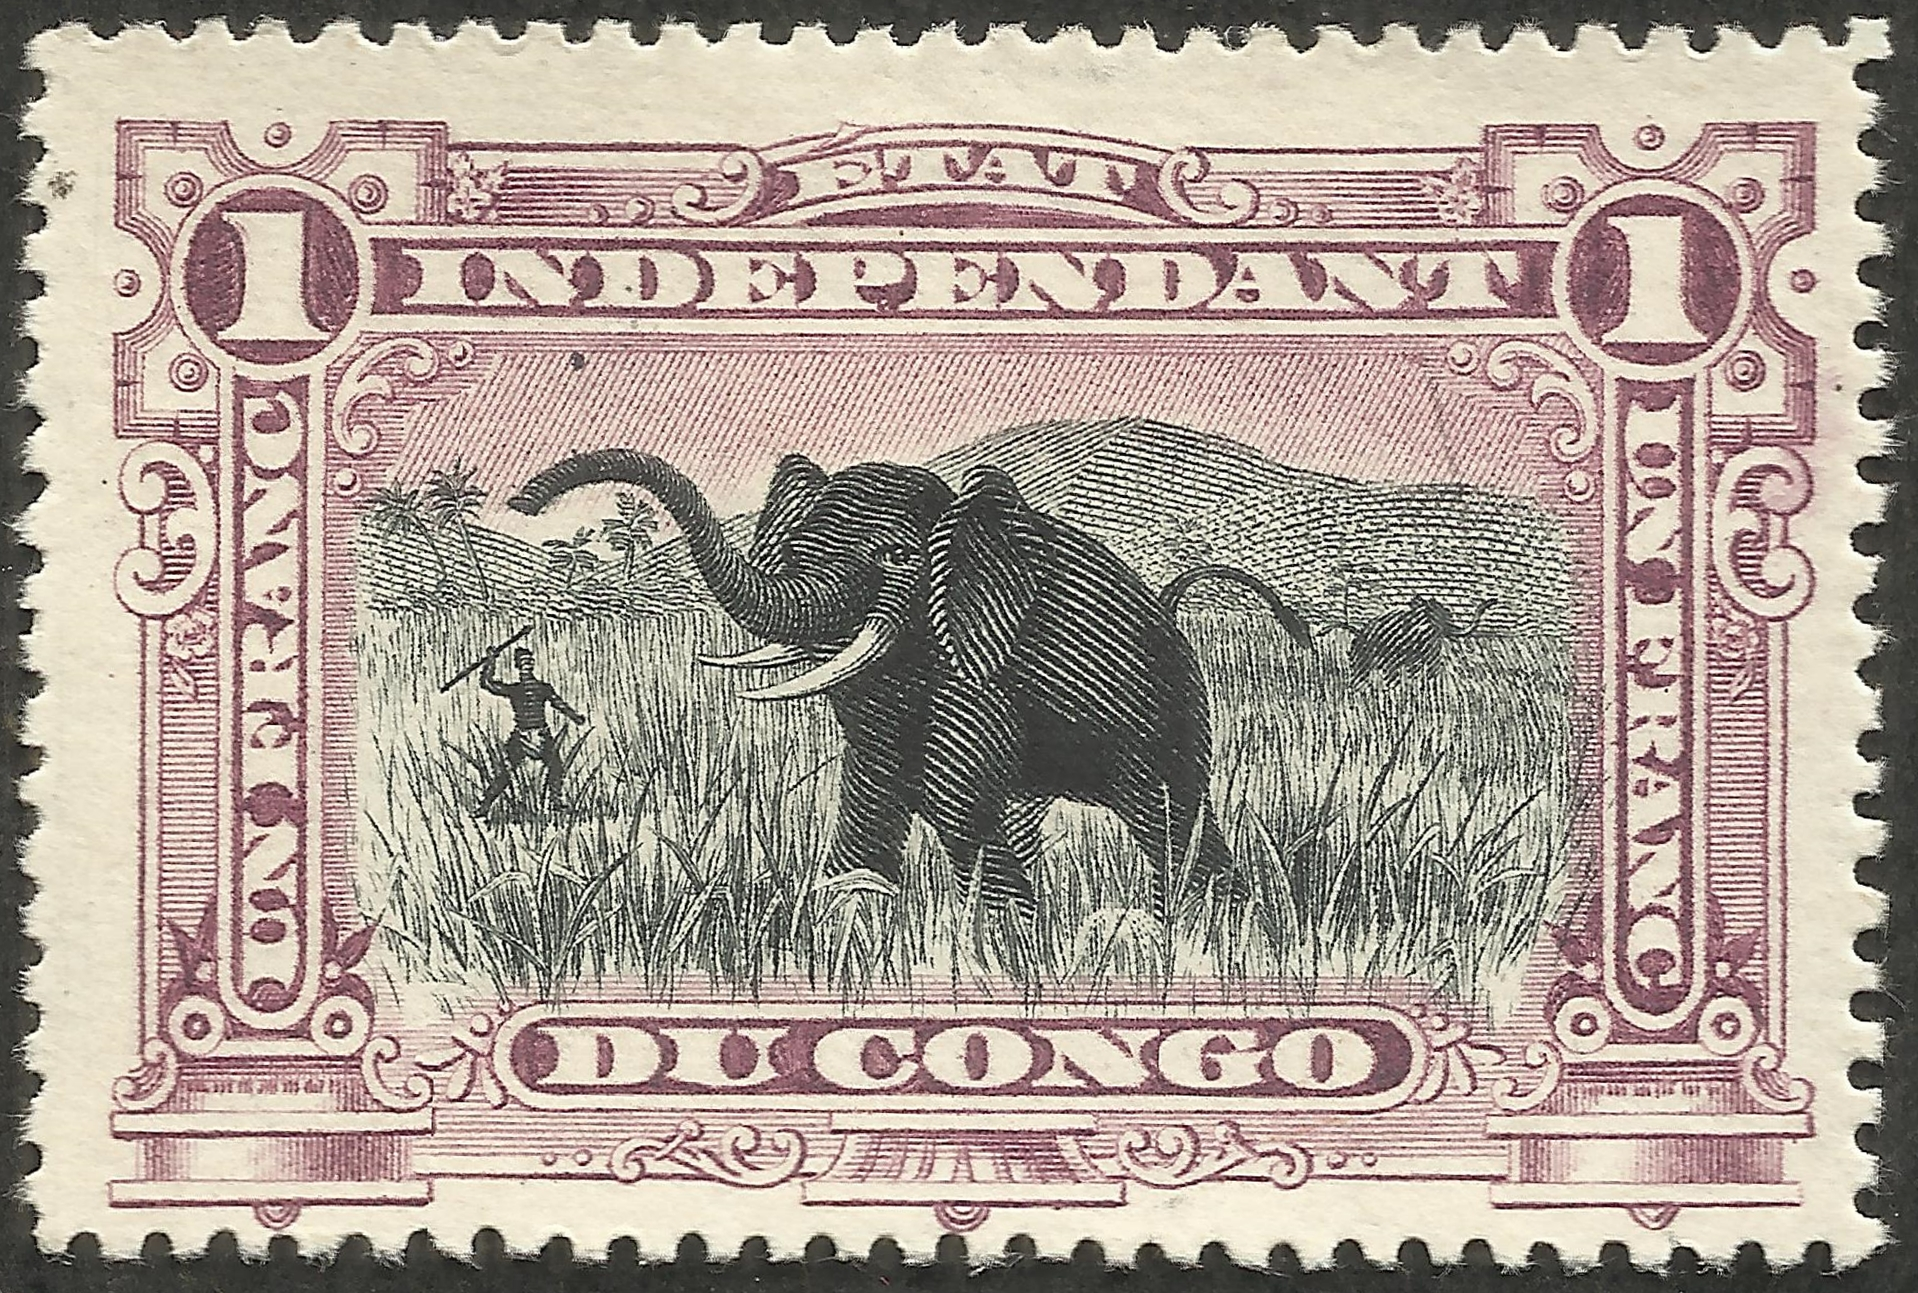 Congo Free State #24 (1894)